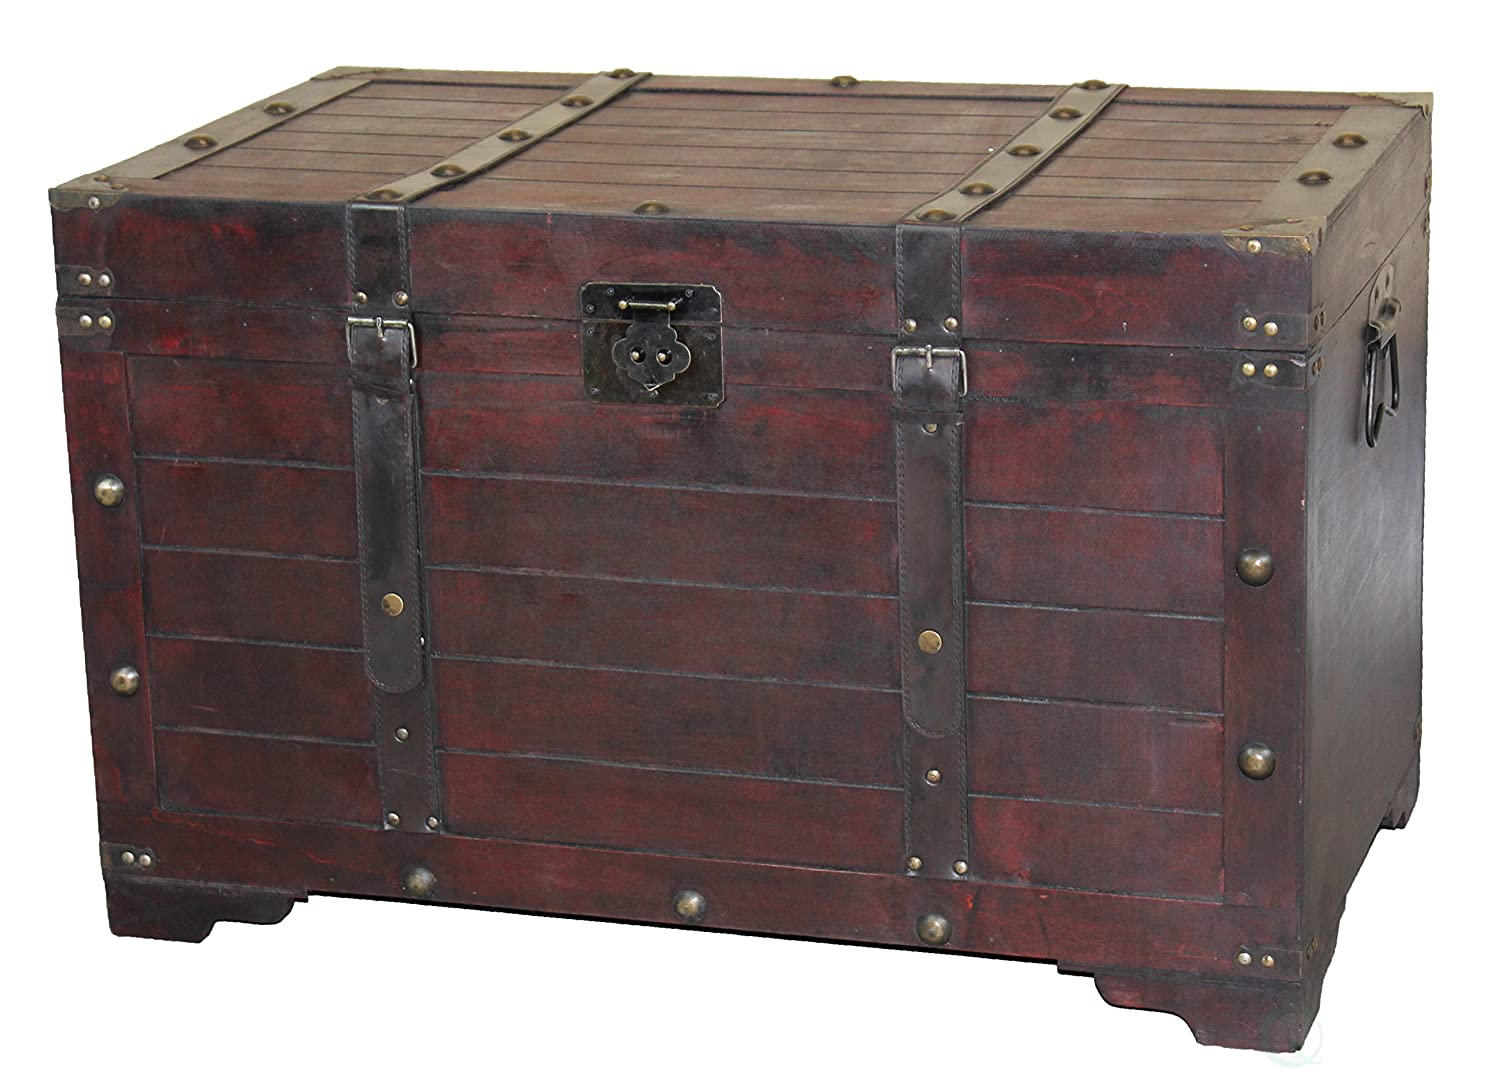 Vintiquewise QI003269LNEW Large Wooden Antique Storage Trunk, Cherry